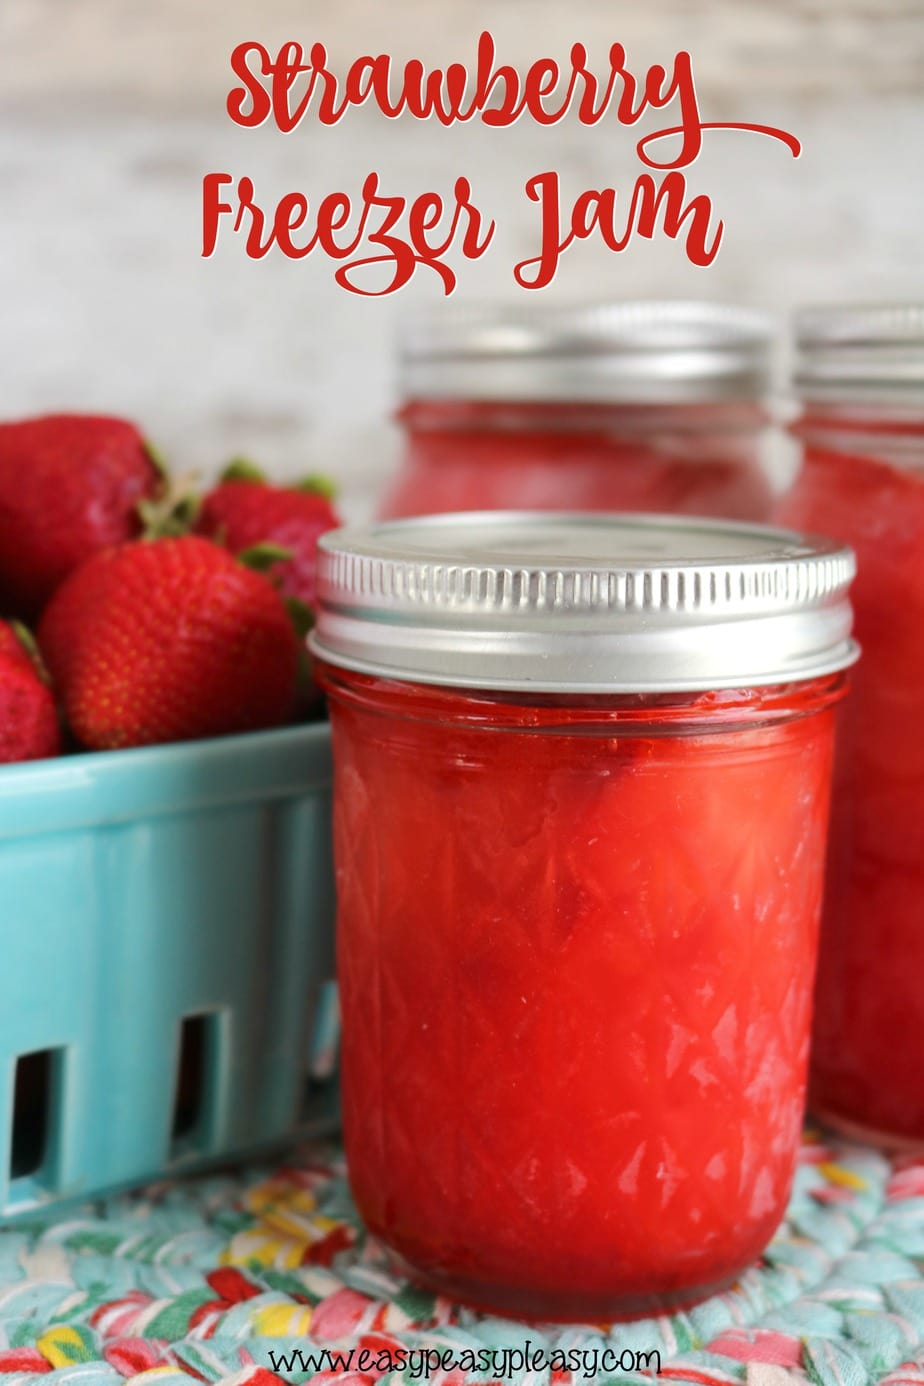 Want to buy a flat of strawberries Check out my favorite ways to use up all those strawberries, including this super easy 3 Ingredient Strawberry Freezer Jam.